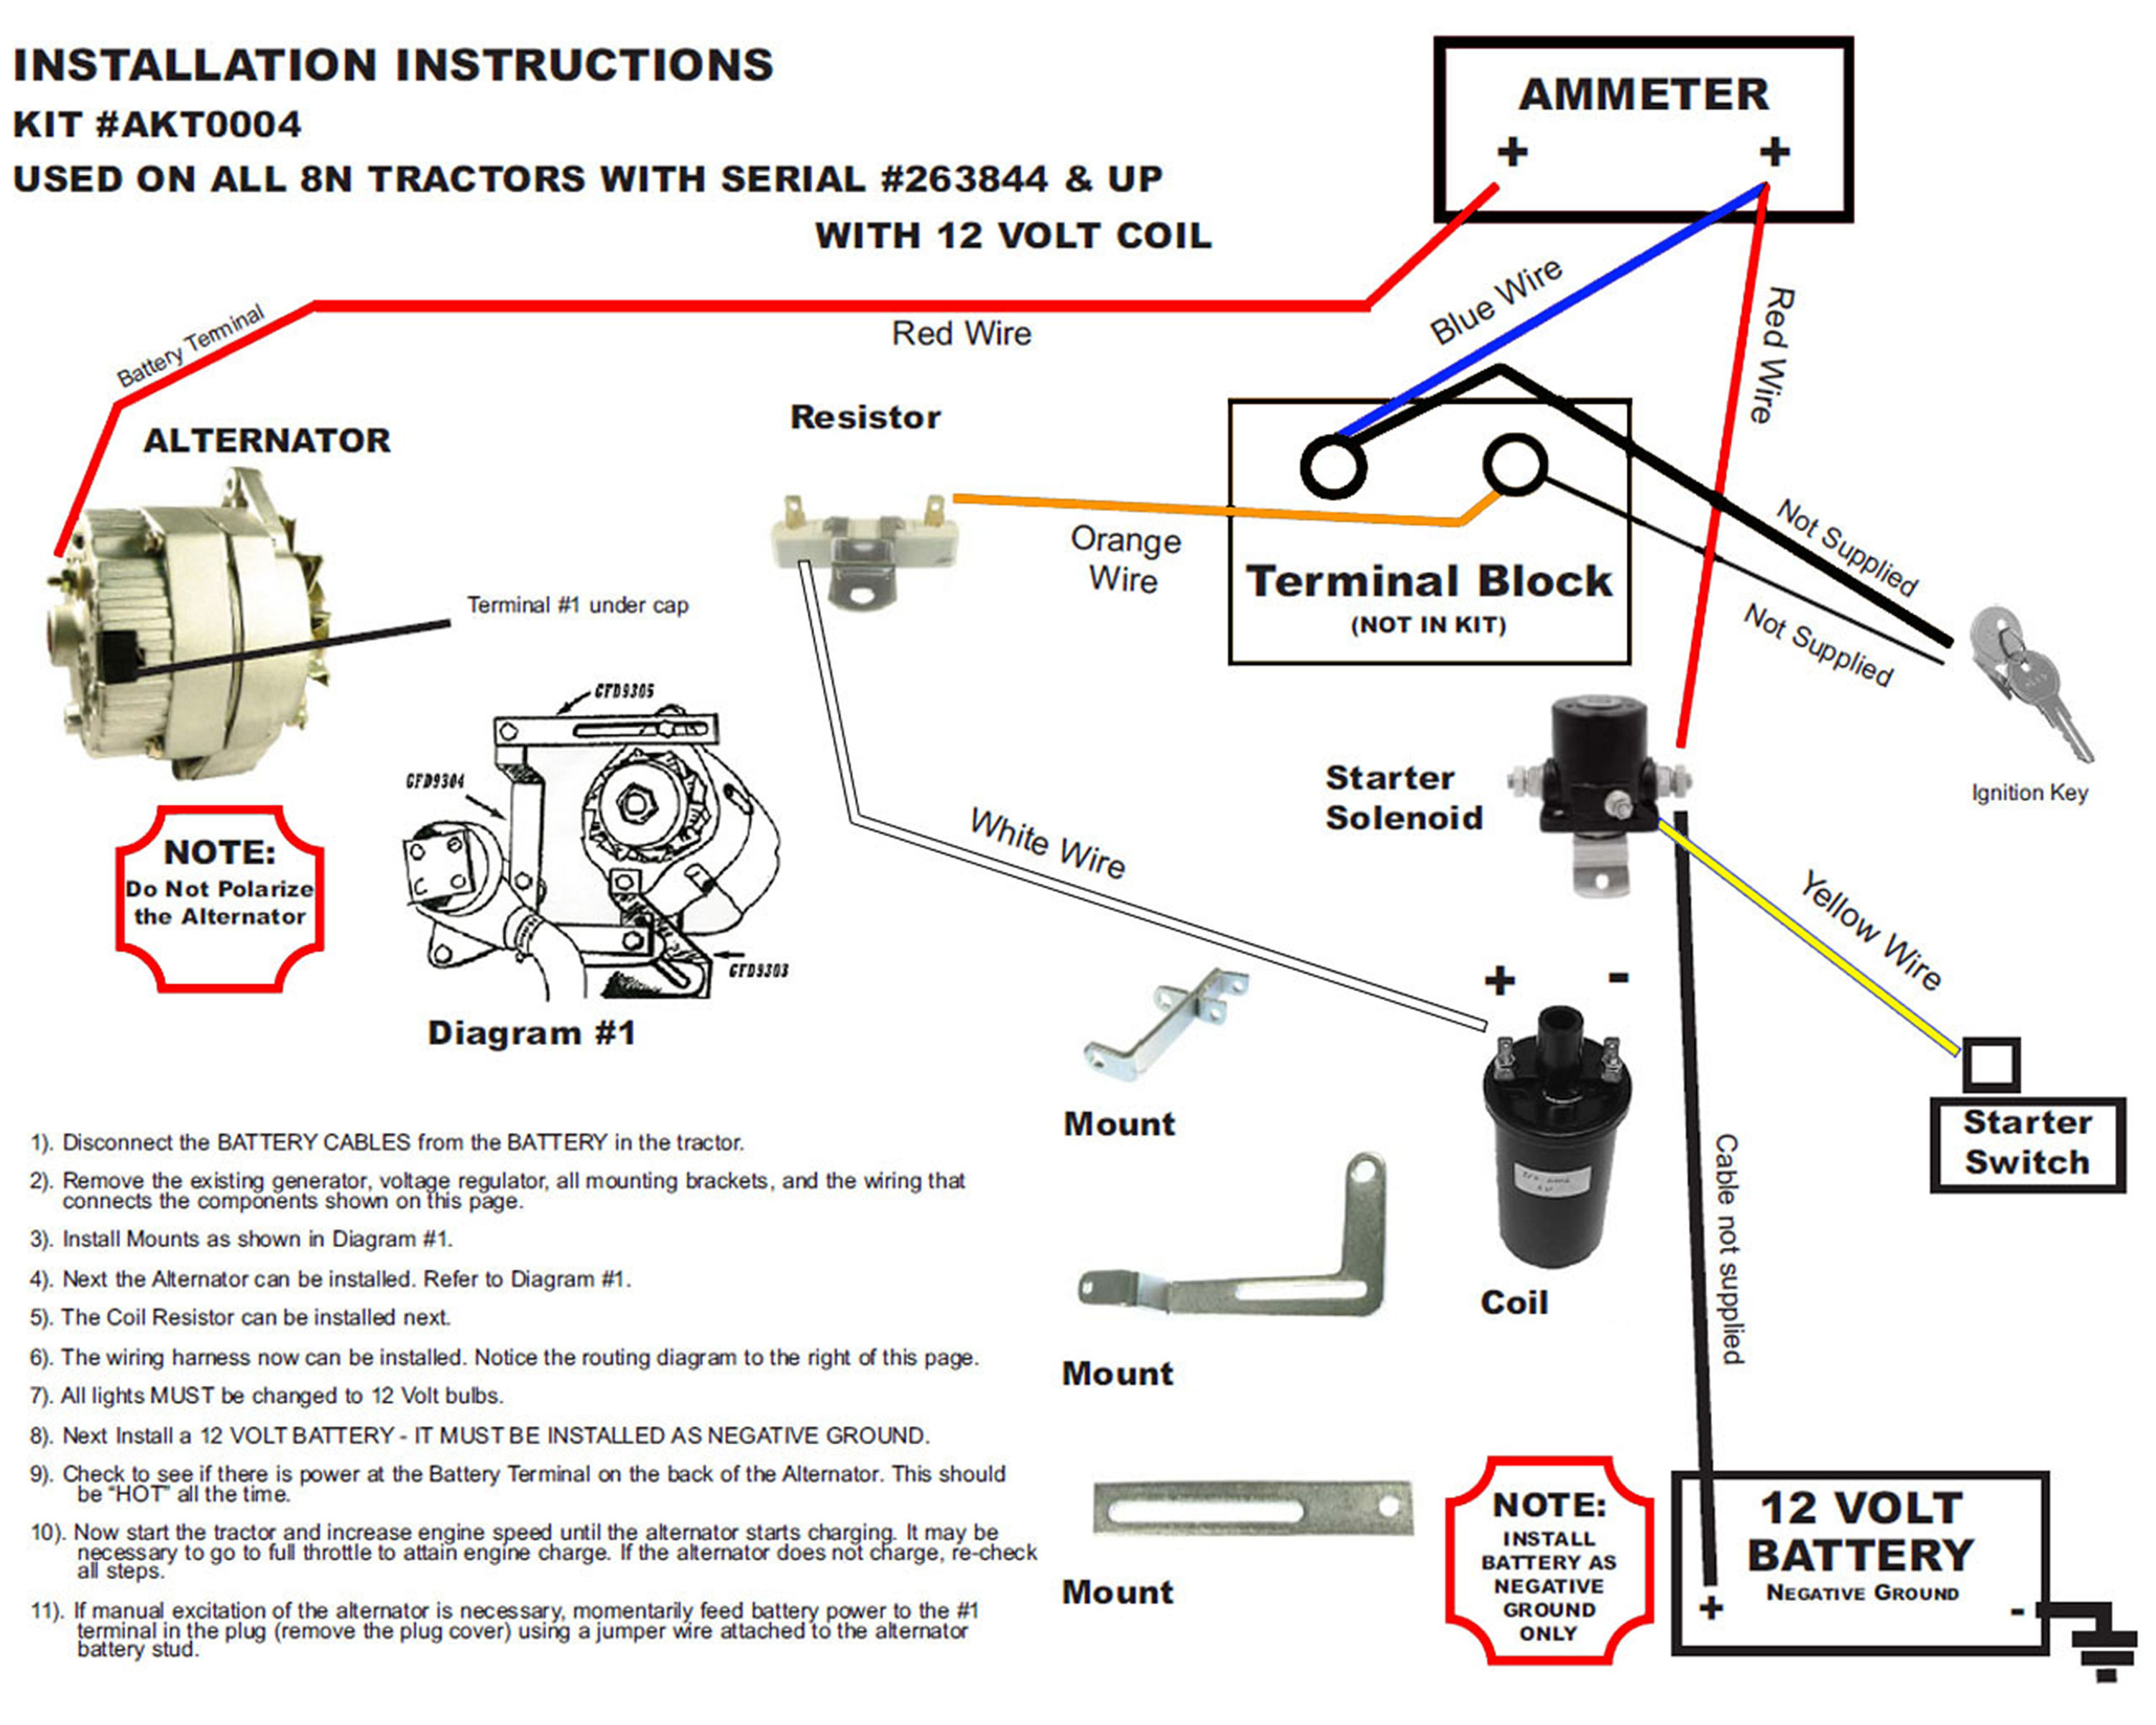 12 Volt Wiring Diagram Ford 8n Tractor 1 Wire Alternator Process Model Diagram Begeboy Wiring Diagram Source